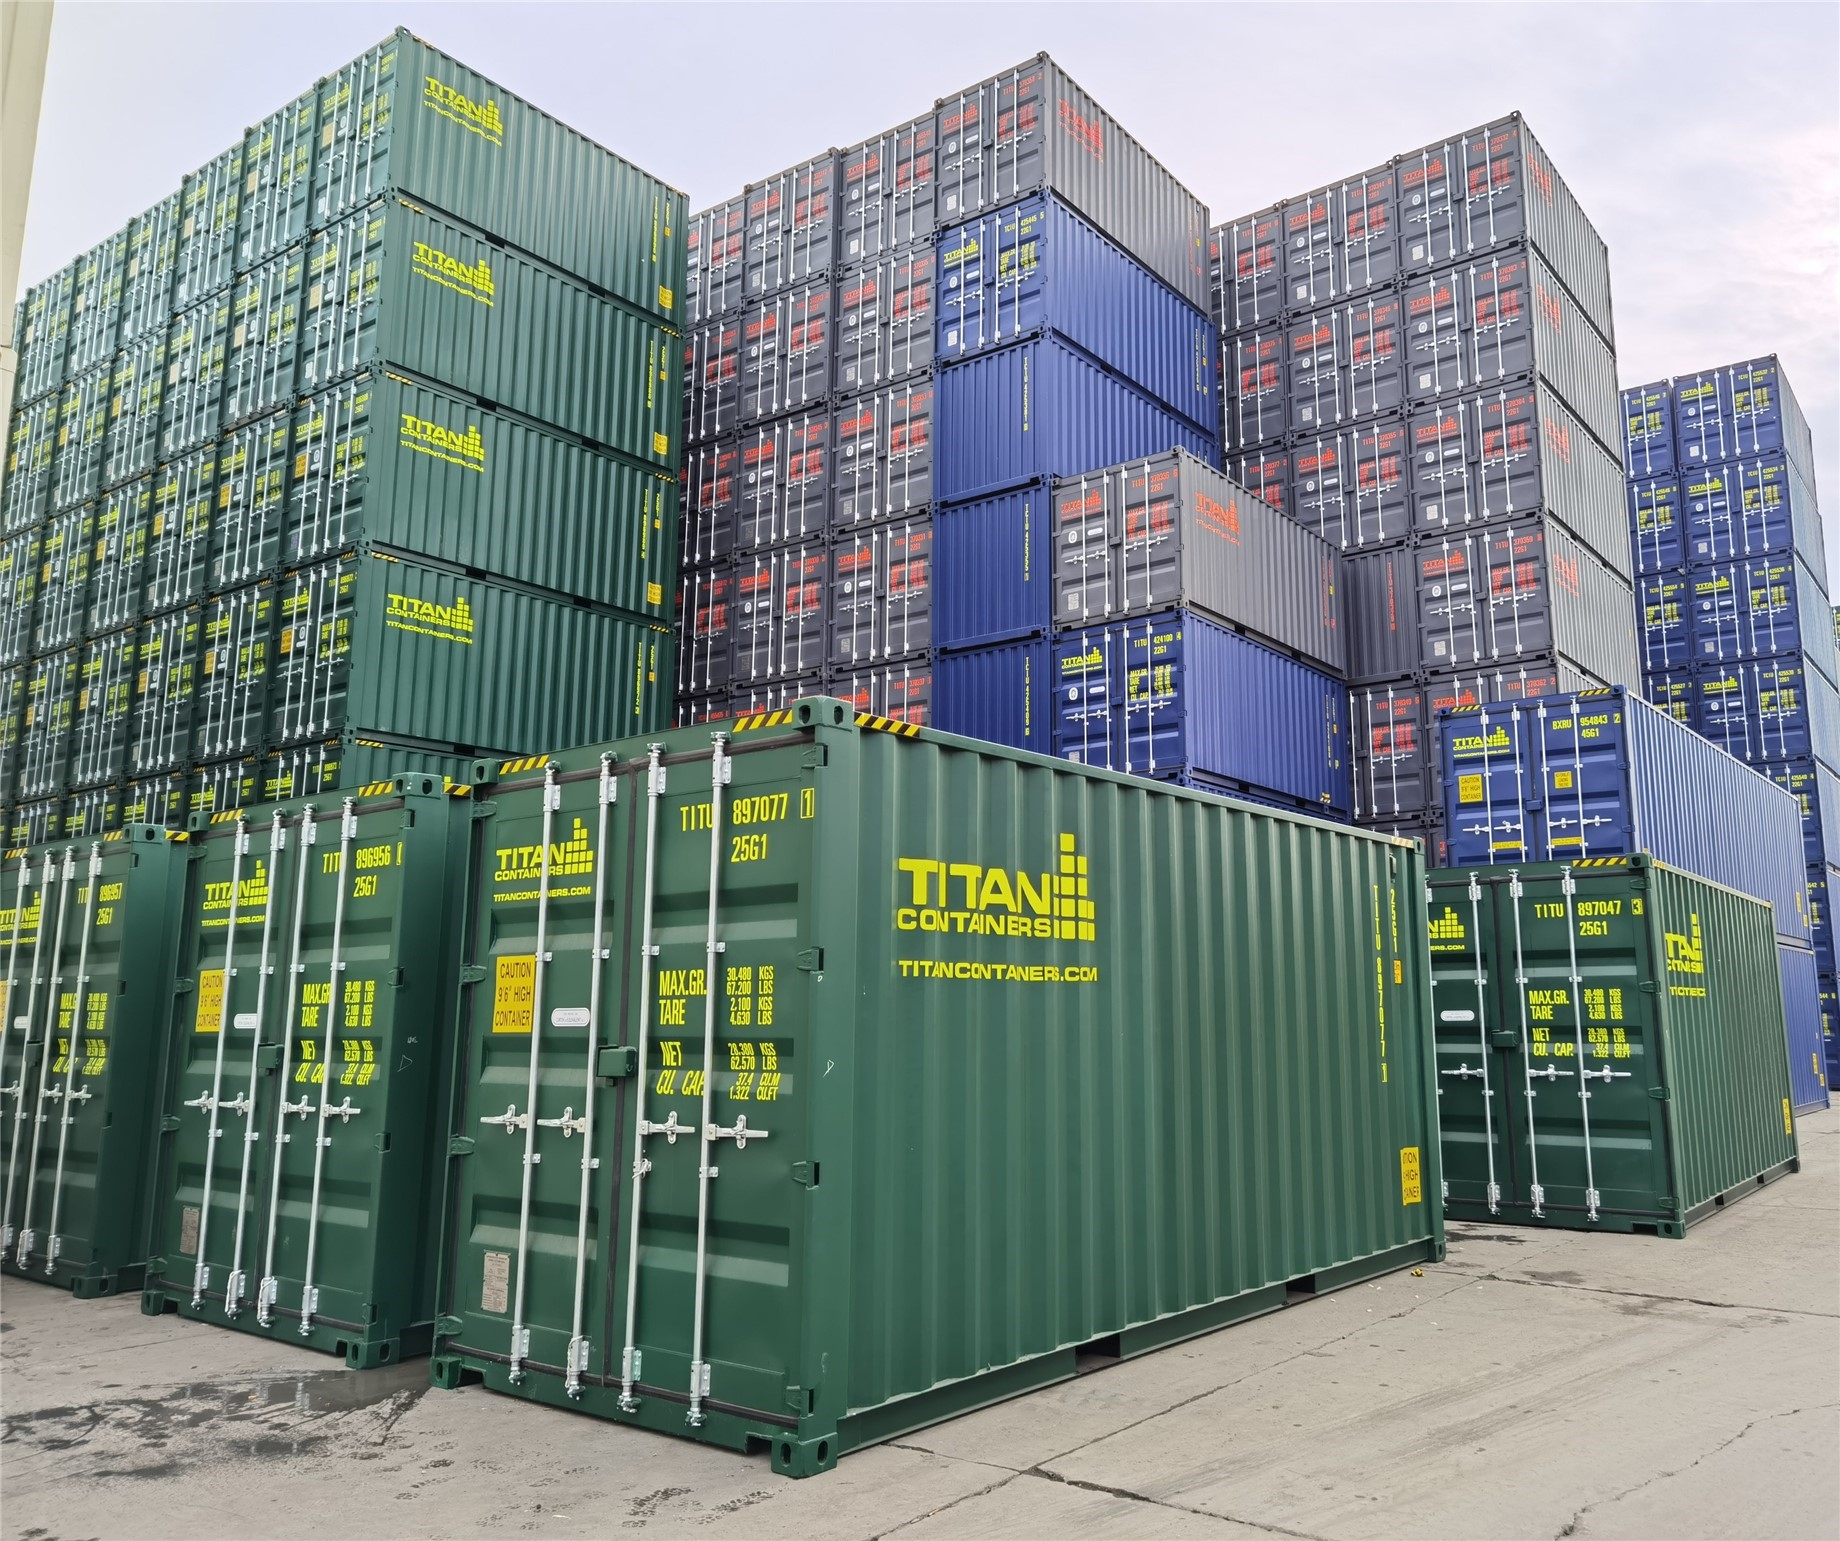 TITAN Containers No shortage of Shipping containers